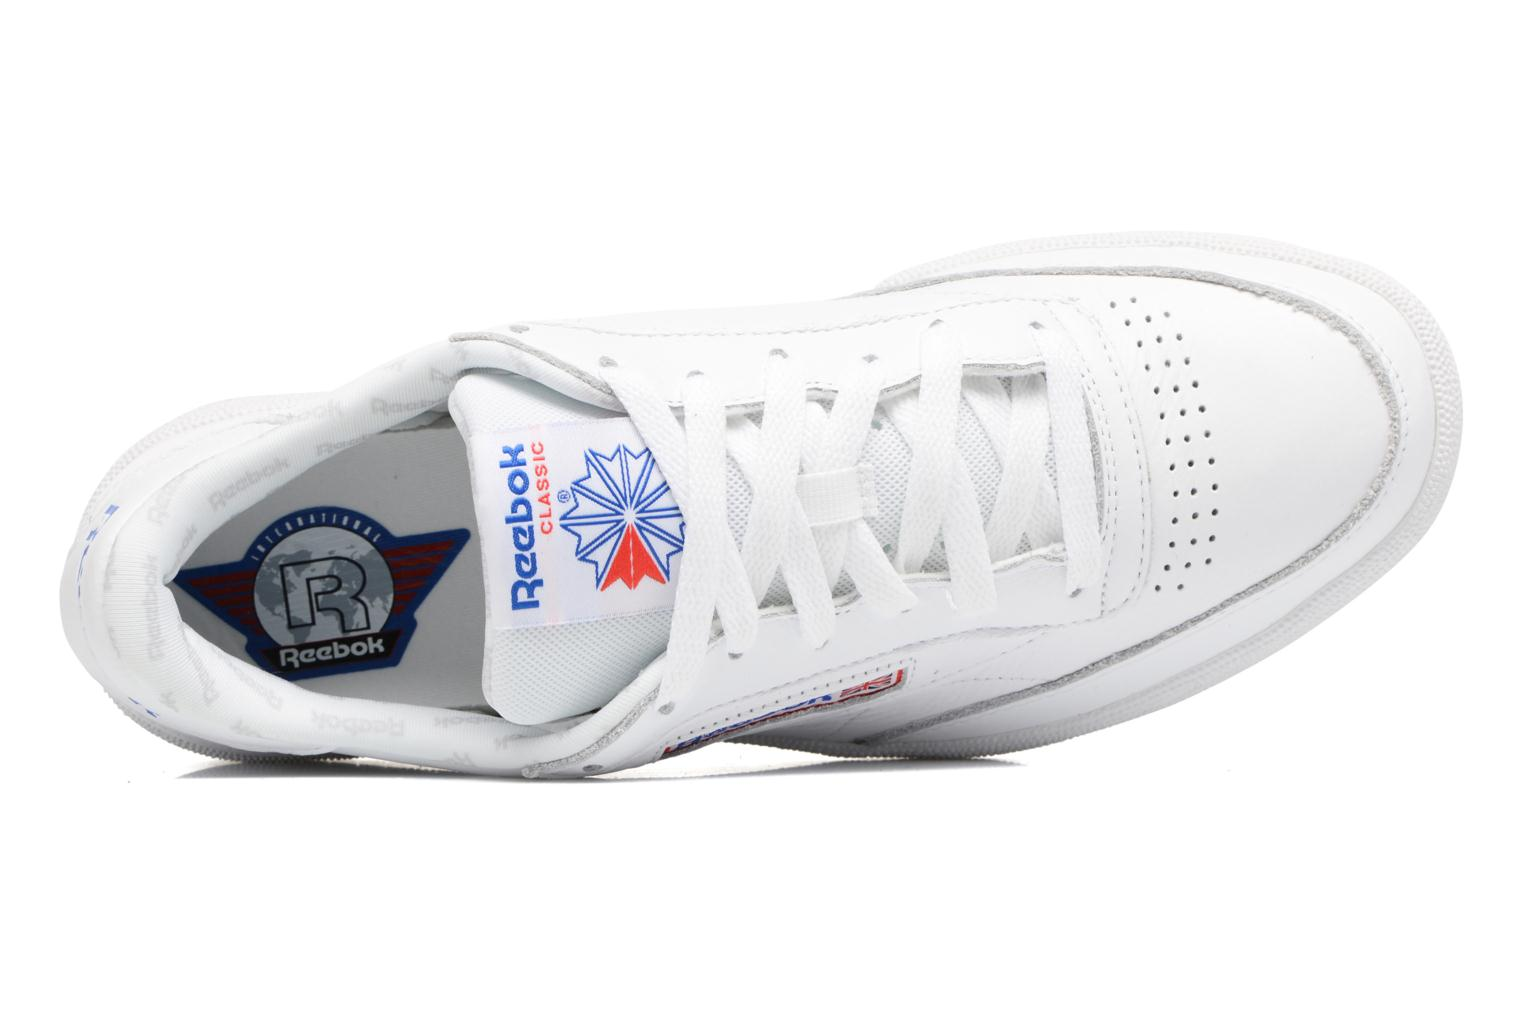 Club C 85 So White/Lgh Solid Grey/Vital Blue/Prml Red/Blk